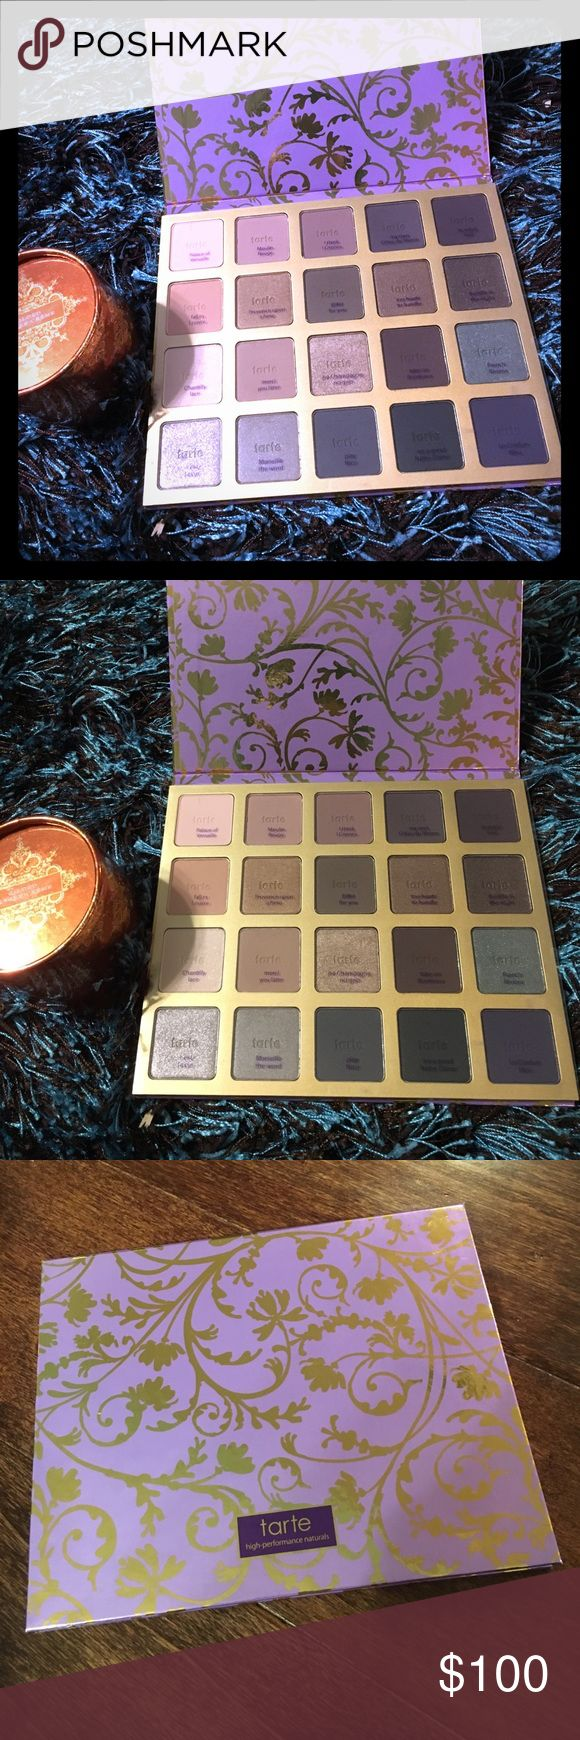 Tarte Holiday Limited Edition Palette NEW! 👄😍 Tarte Musings of a Muse Holiday 2014 Limited Edition  Palette NEW!! Limited Edition. No longer available in stores. Comes new. Authentic. Beautiful neutrals. tarte Makeup Eyeshadow